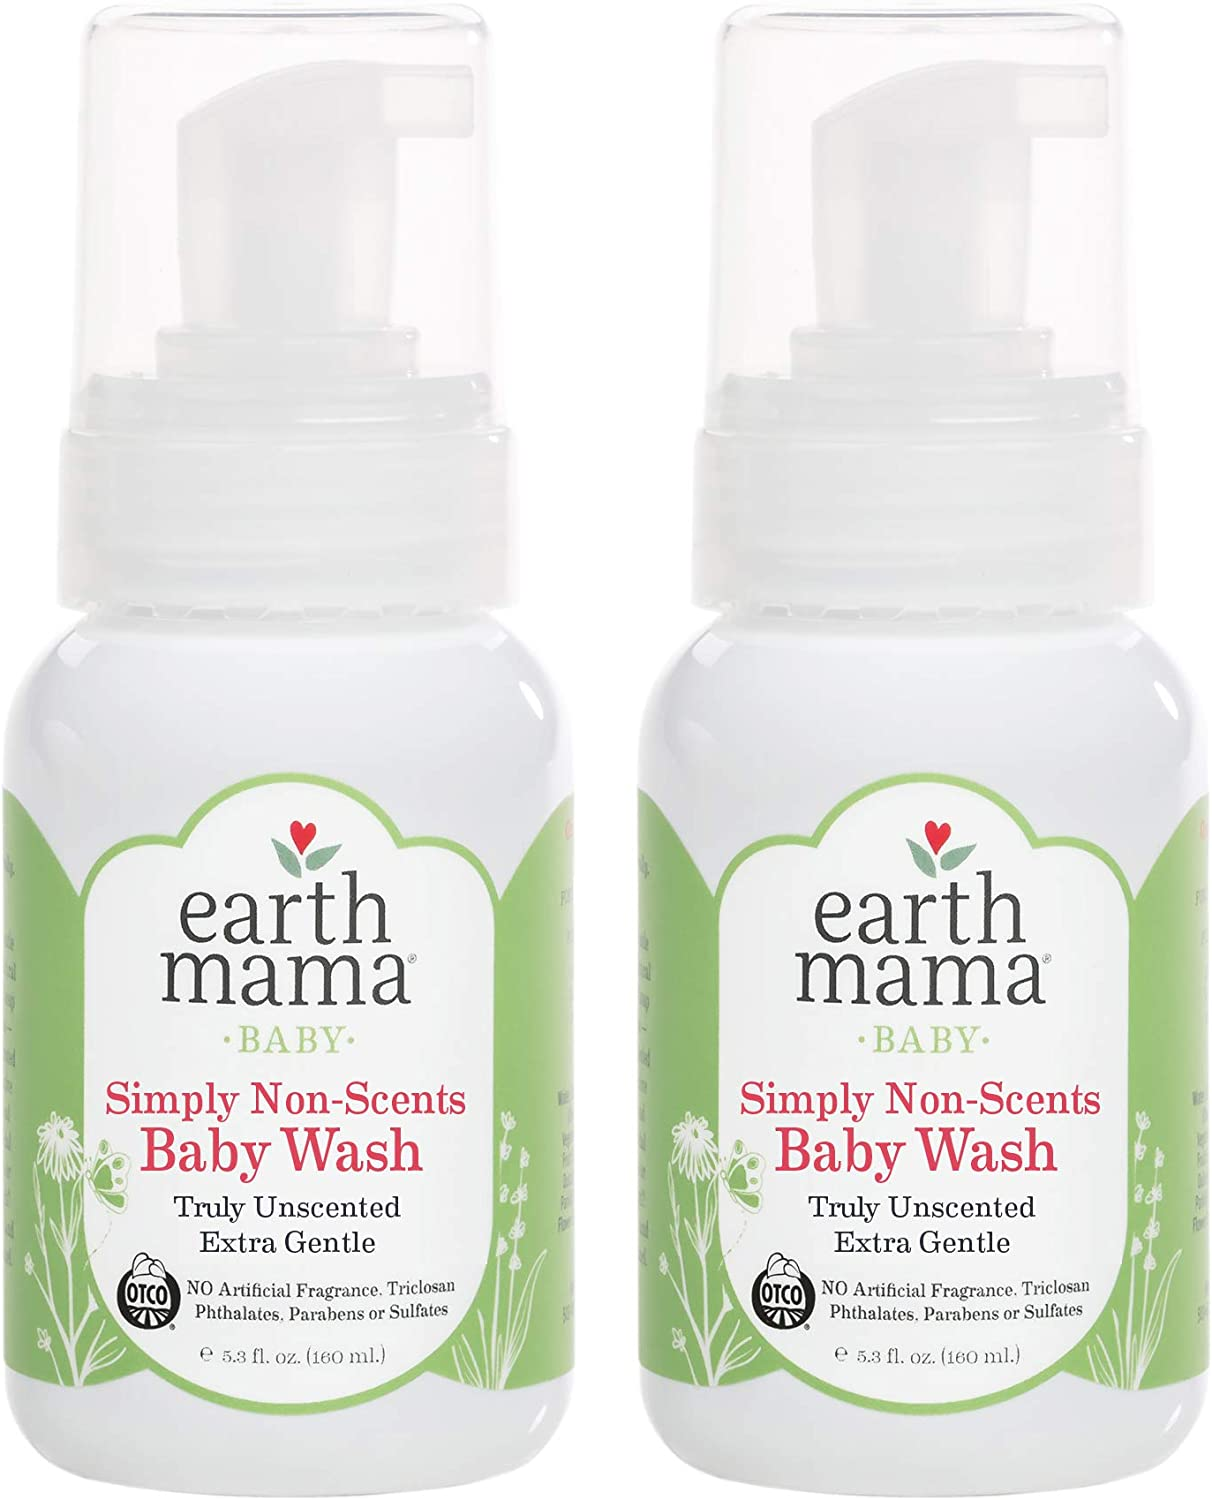 Earth Mama Simply Non-Scents Foaming Hand Soap | Pure Castile Germ-Fighting Body Wash, 5.3-Fluid Ounce (2-Pack)